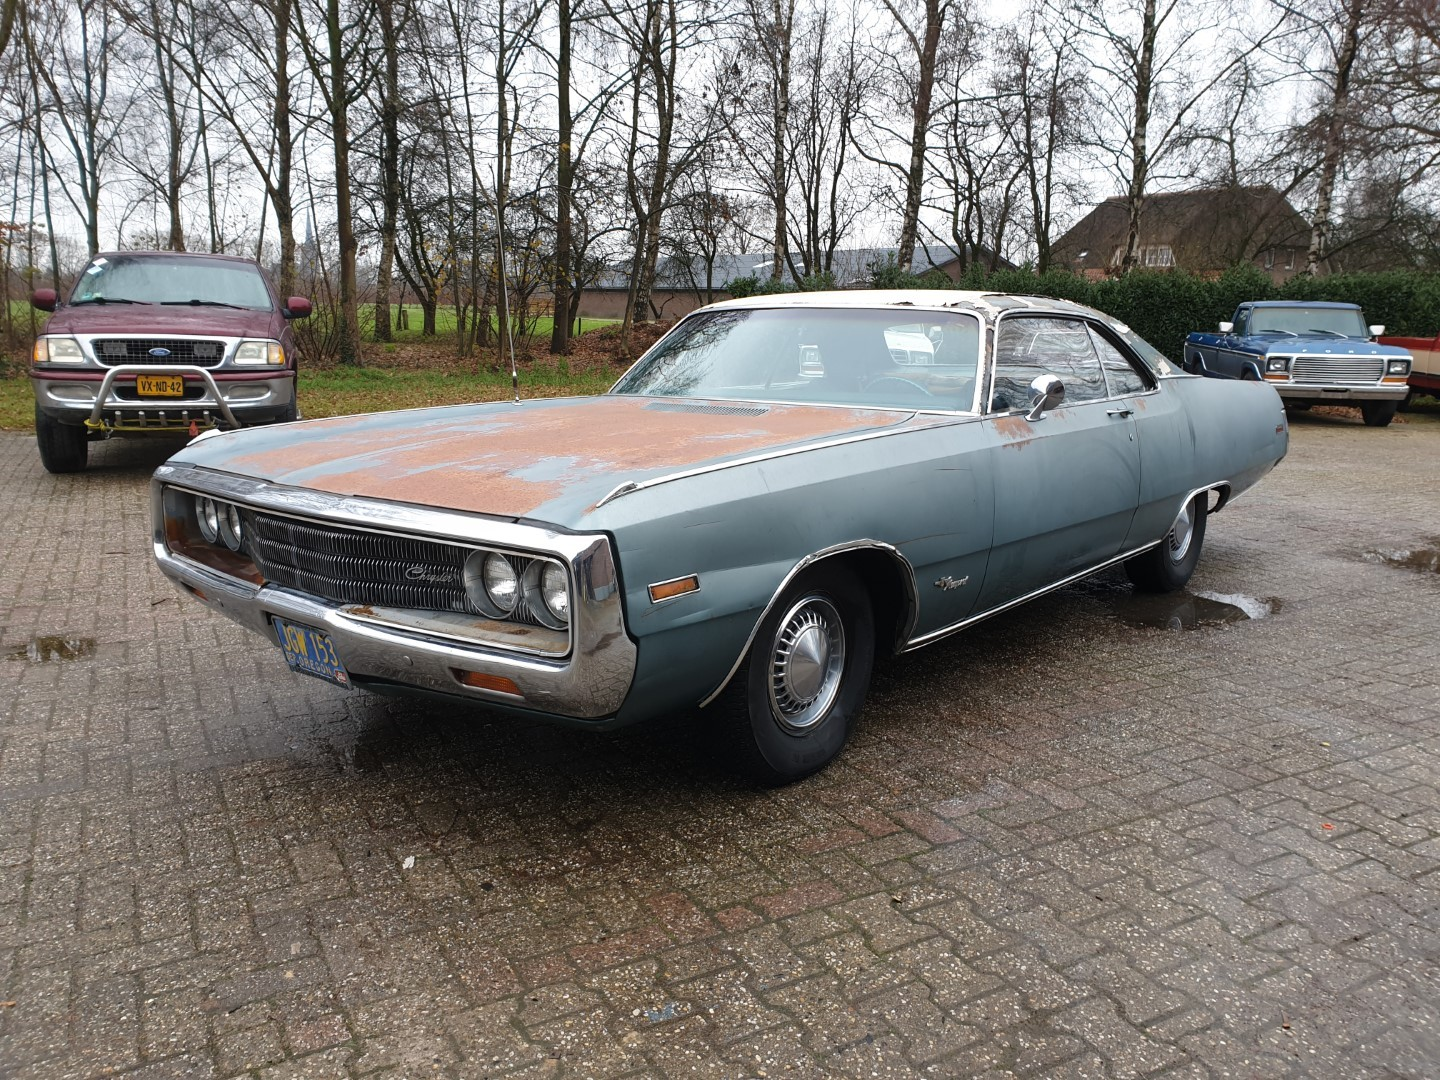 1970-Chrysler-Newport-383ci-V8-2